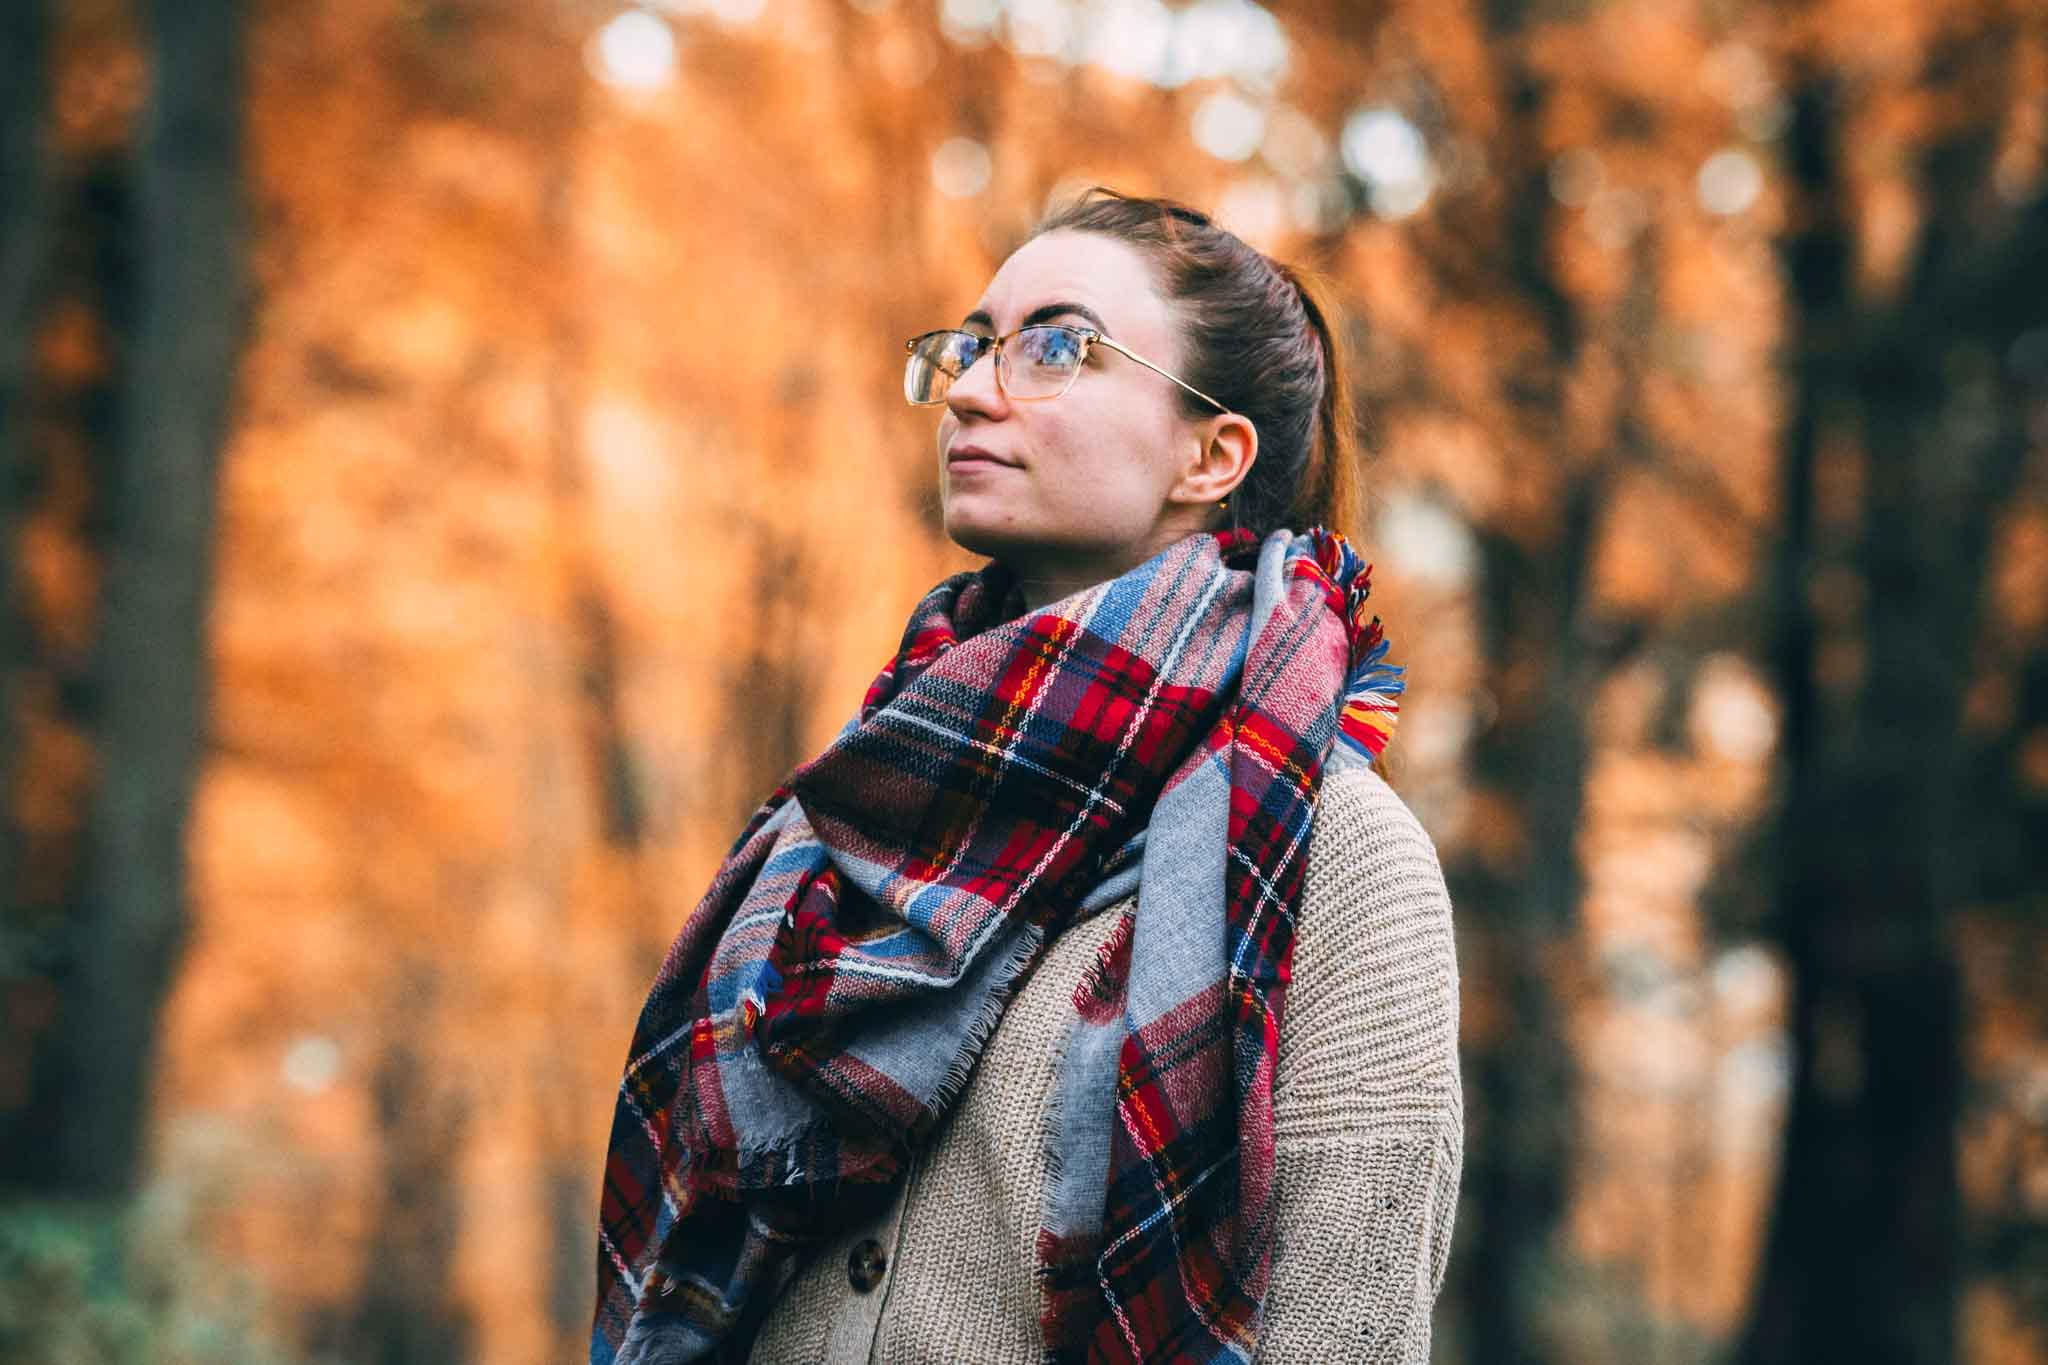 Fall acne can be caused by scarves, hats, beanies that rub on the skin too! The term for this type of acne is called 'Acne Mechanica'.